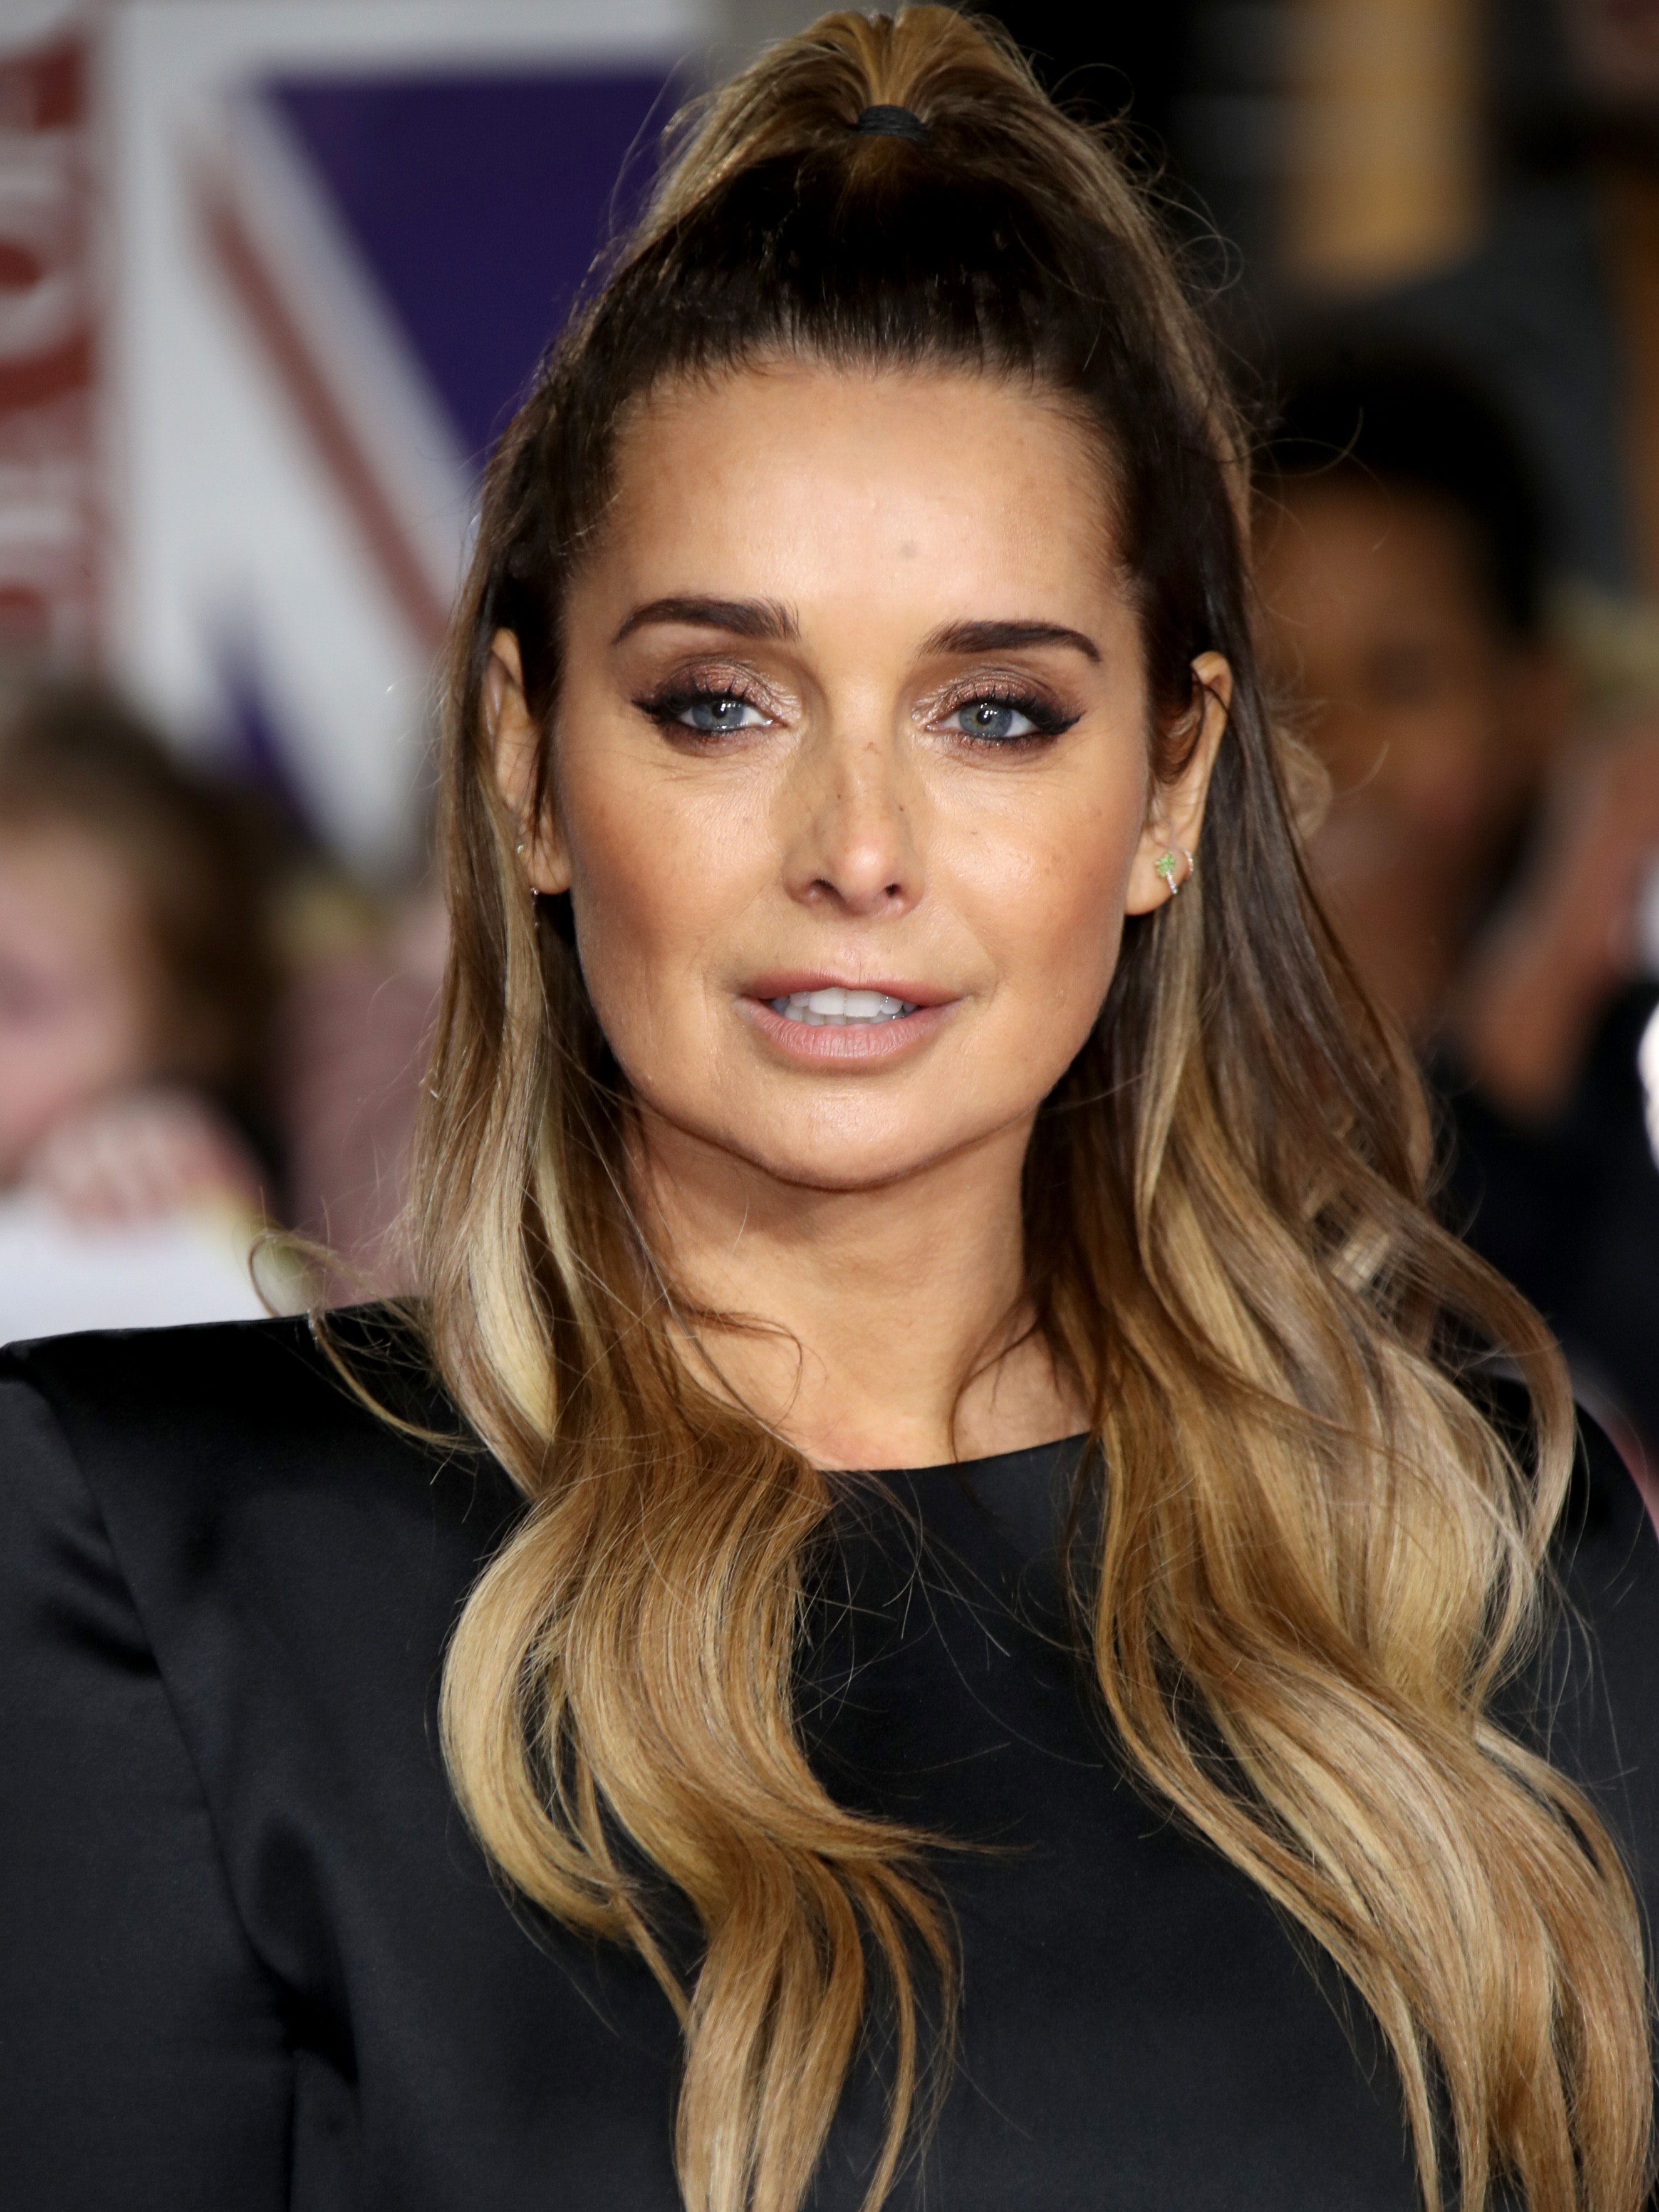 Louise Redknapp stuns in tight dress after opening up about divorce